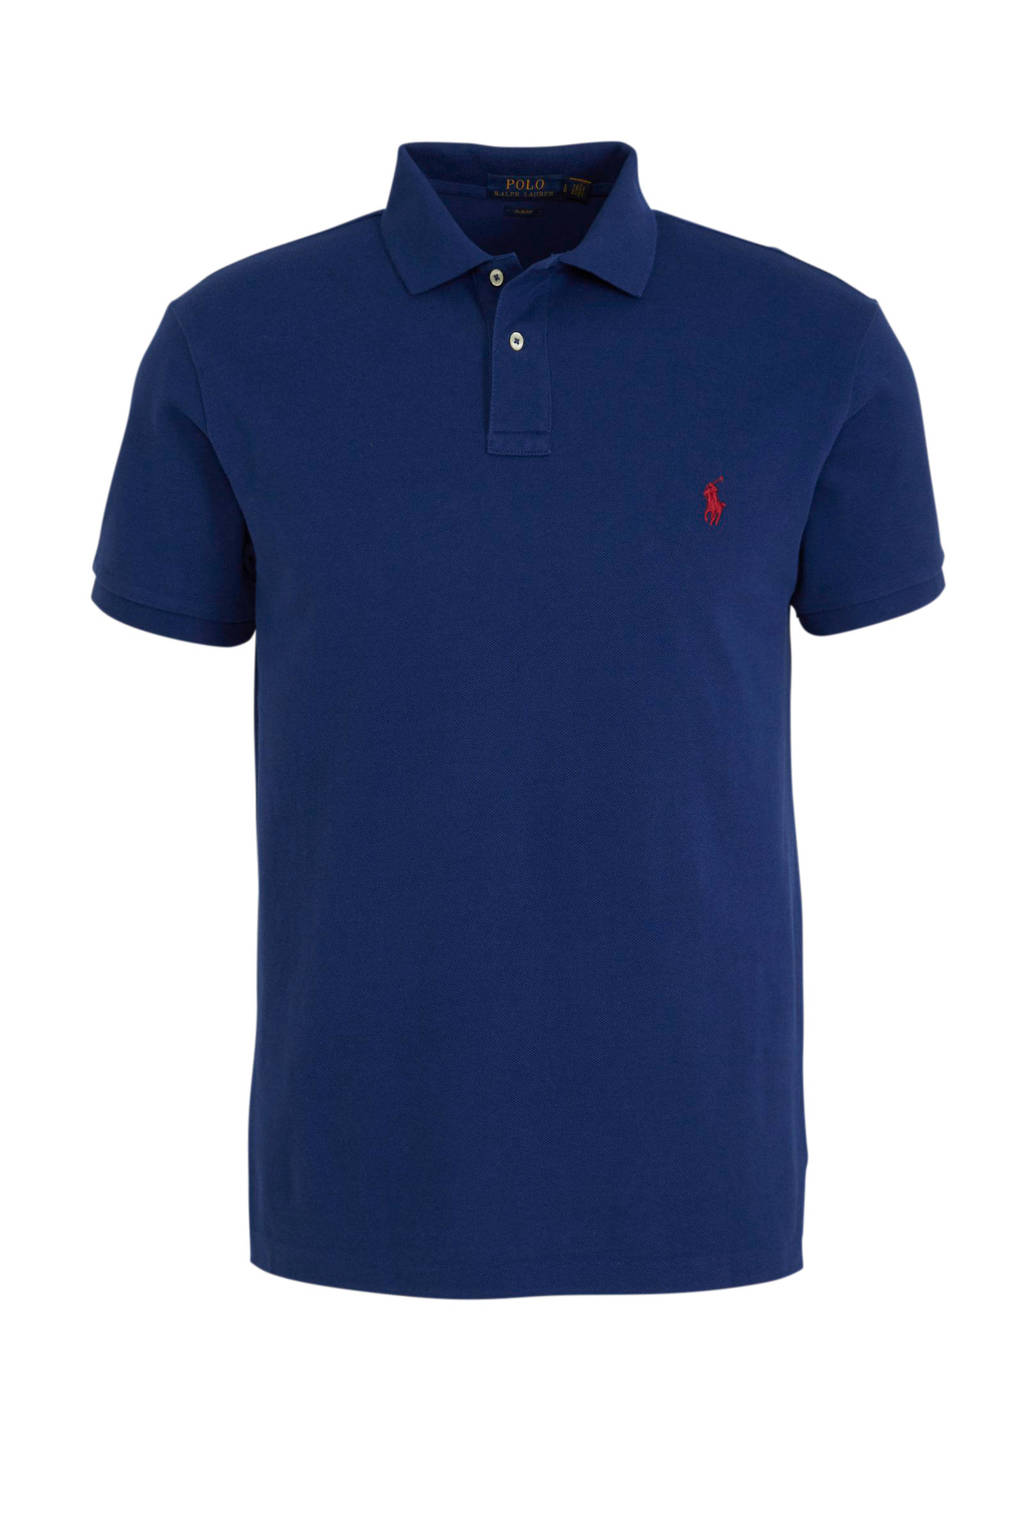 POLO Ralph Lauren slim fit polo donkerblauw, Donkerblauw/rood